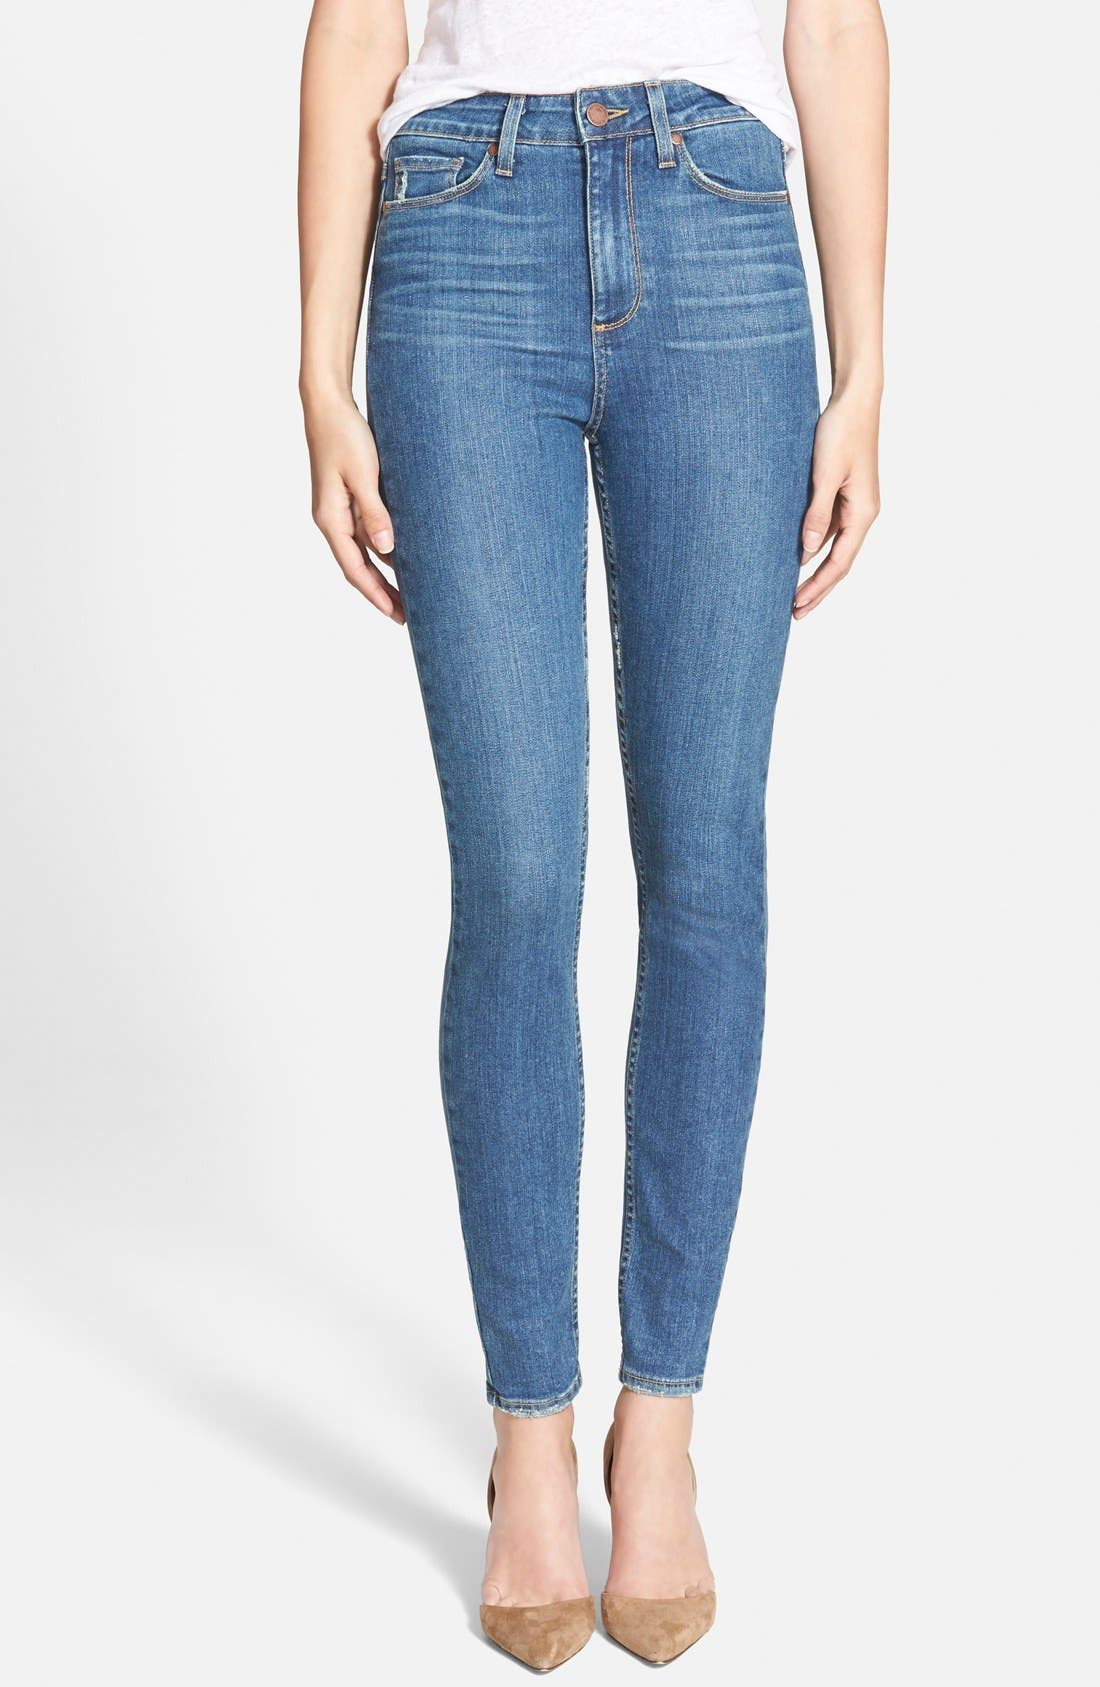 Main Image - Paige Denim 'Margo' High Rise Ultra Skinny Jeans (Mira)